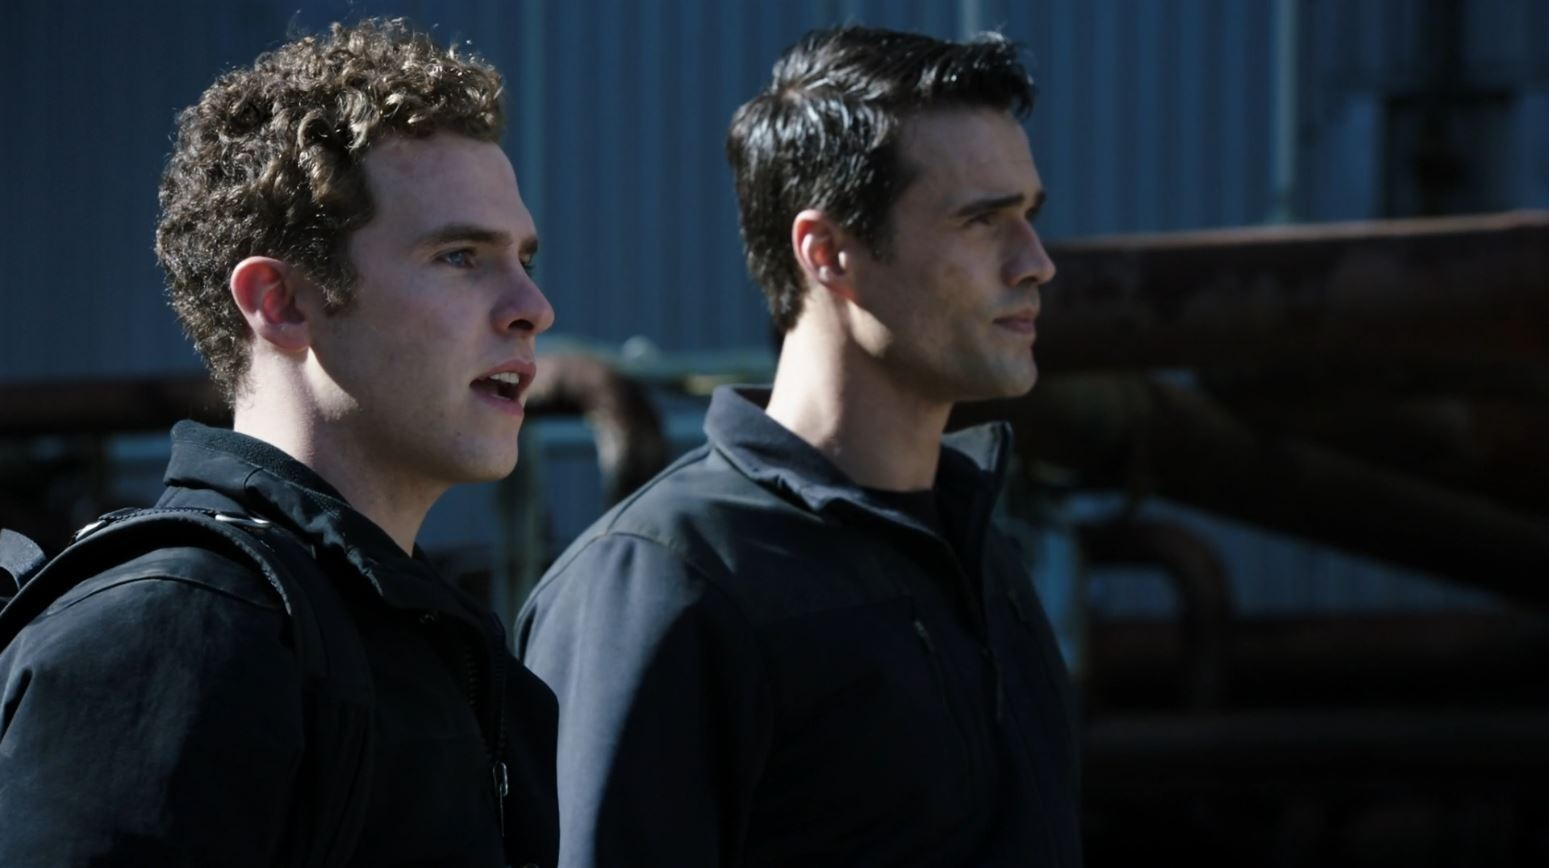 Ward and Fitz preparing to be captured - Agents of SHIELD